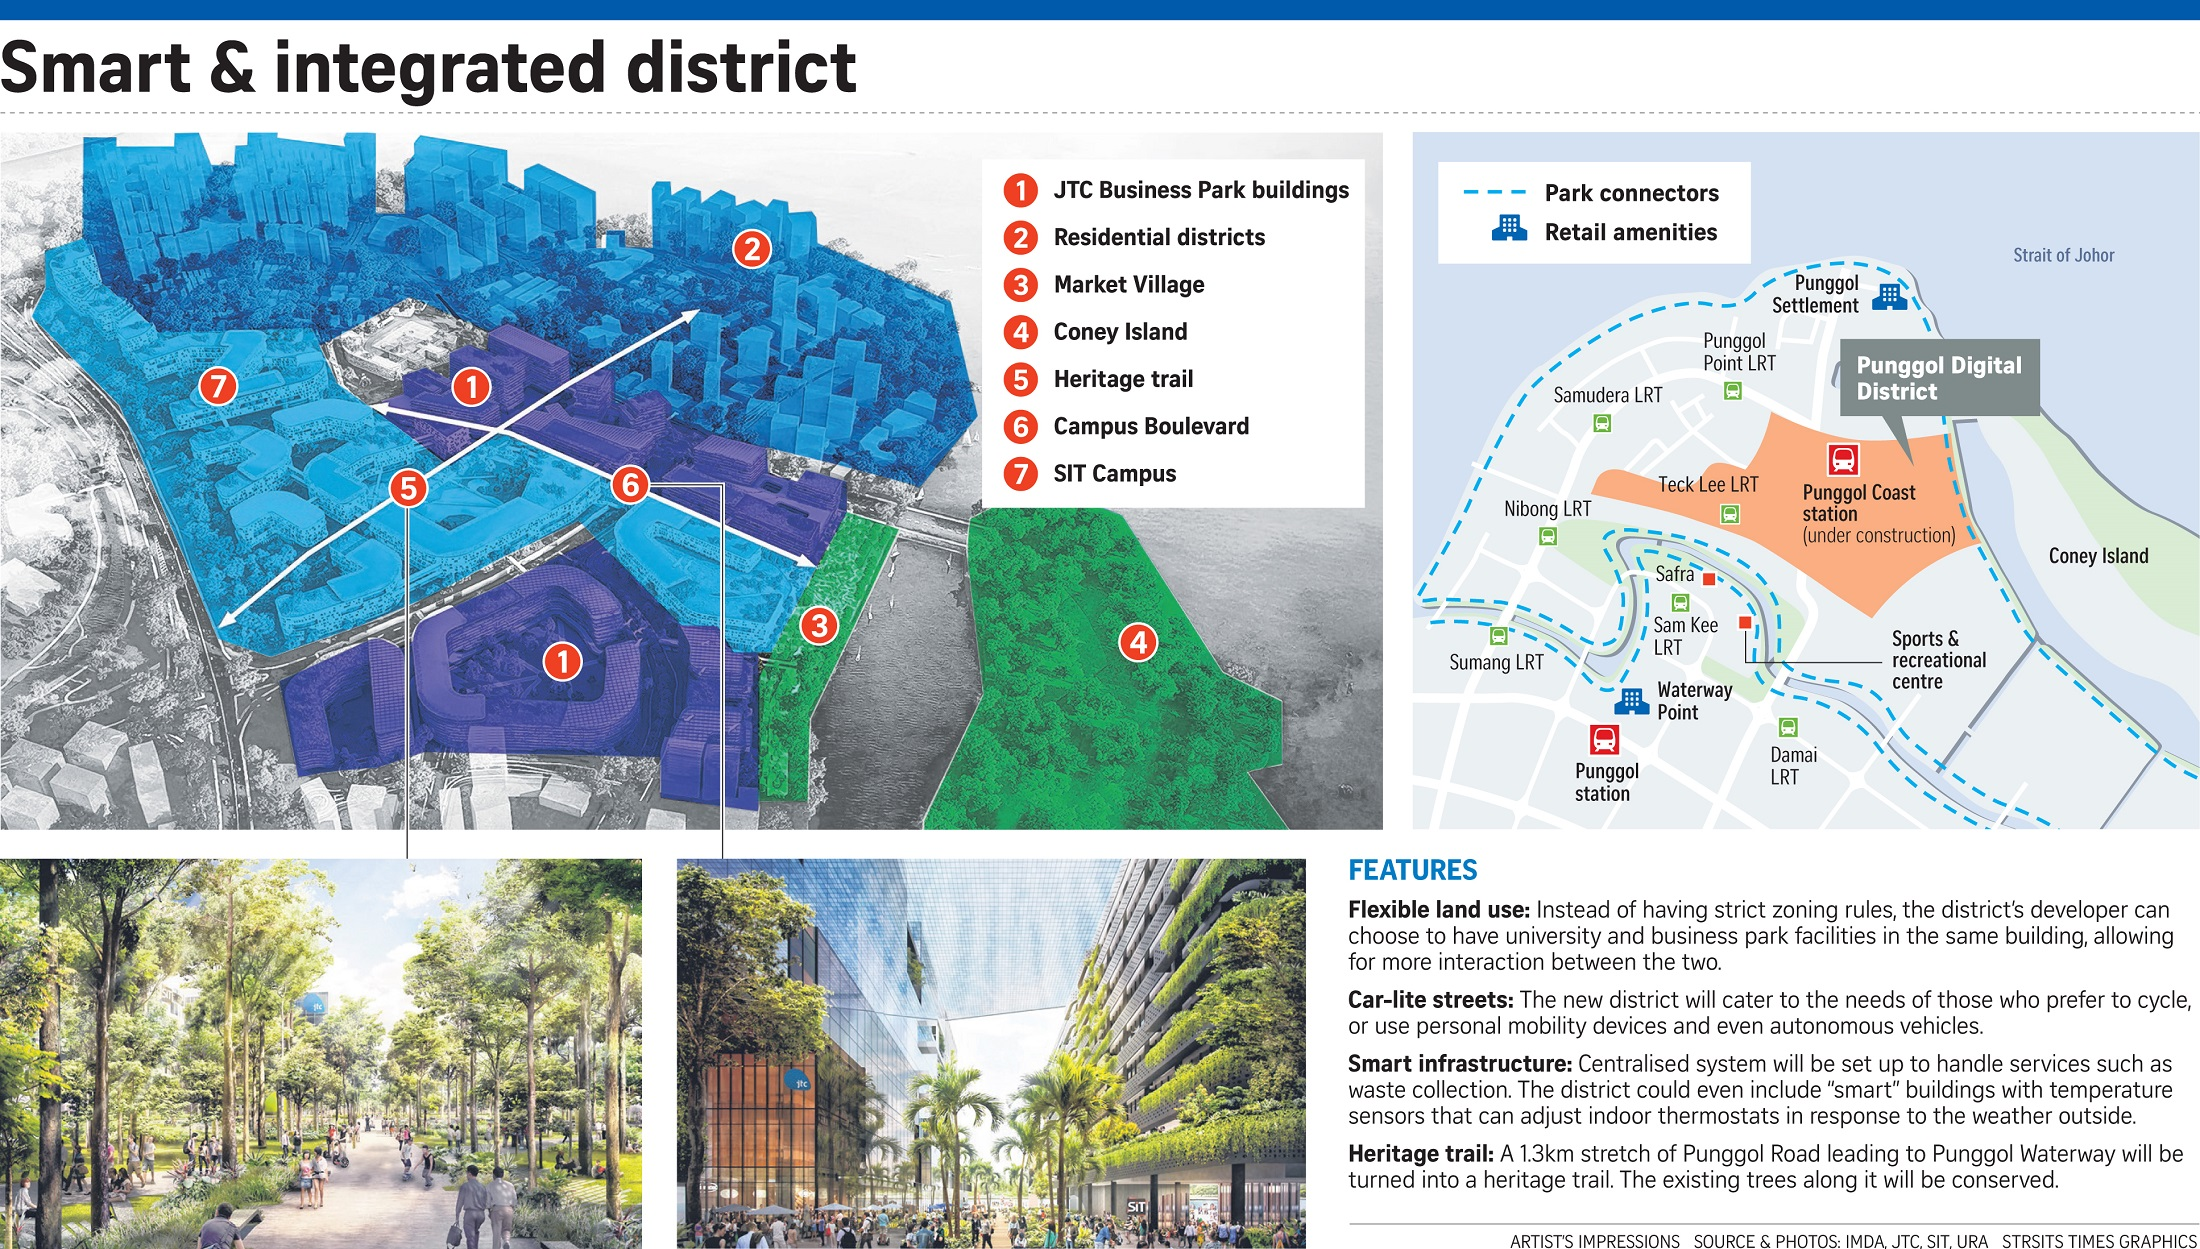 sengkang-grandresidences-gains-from-punggol-digital-district-housing-demands